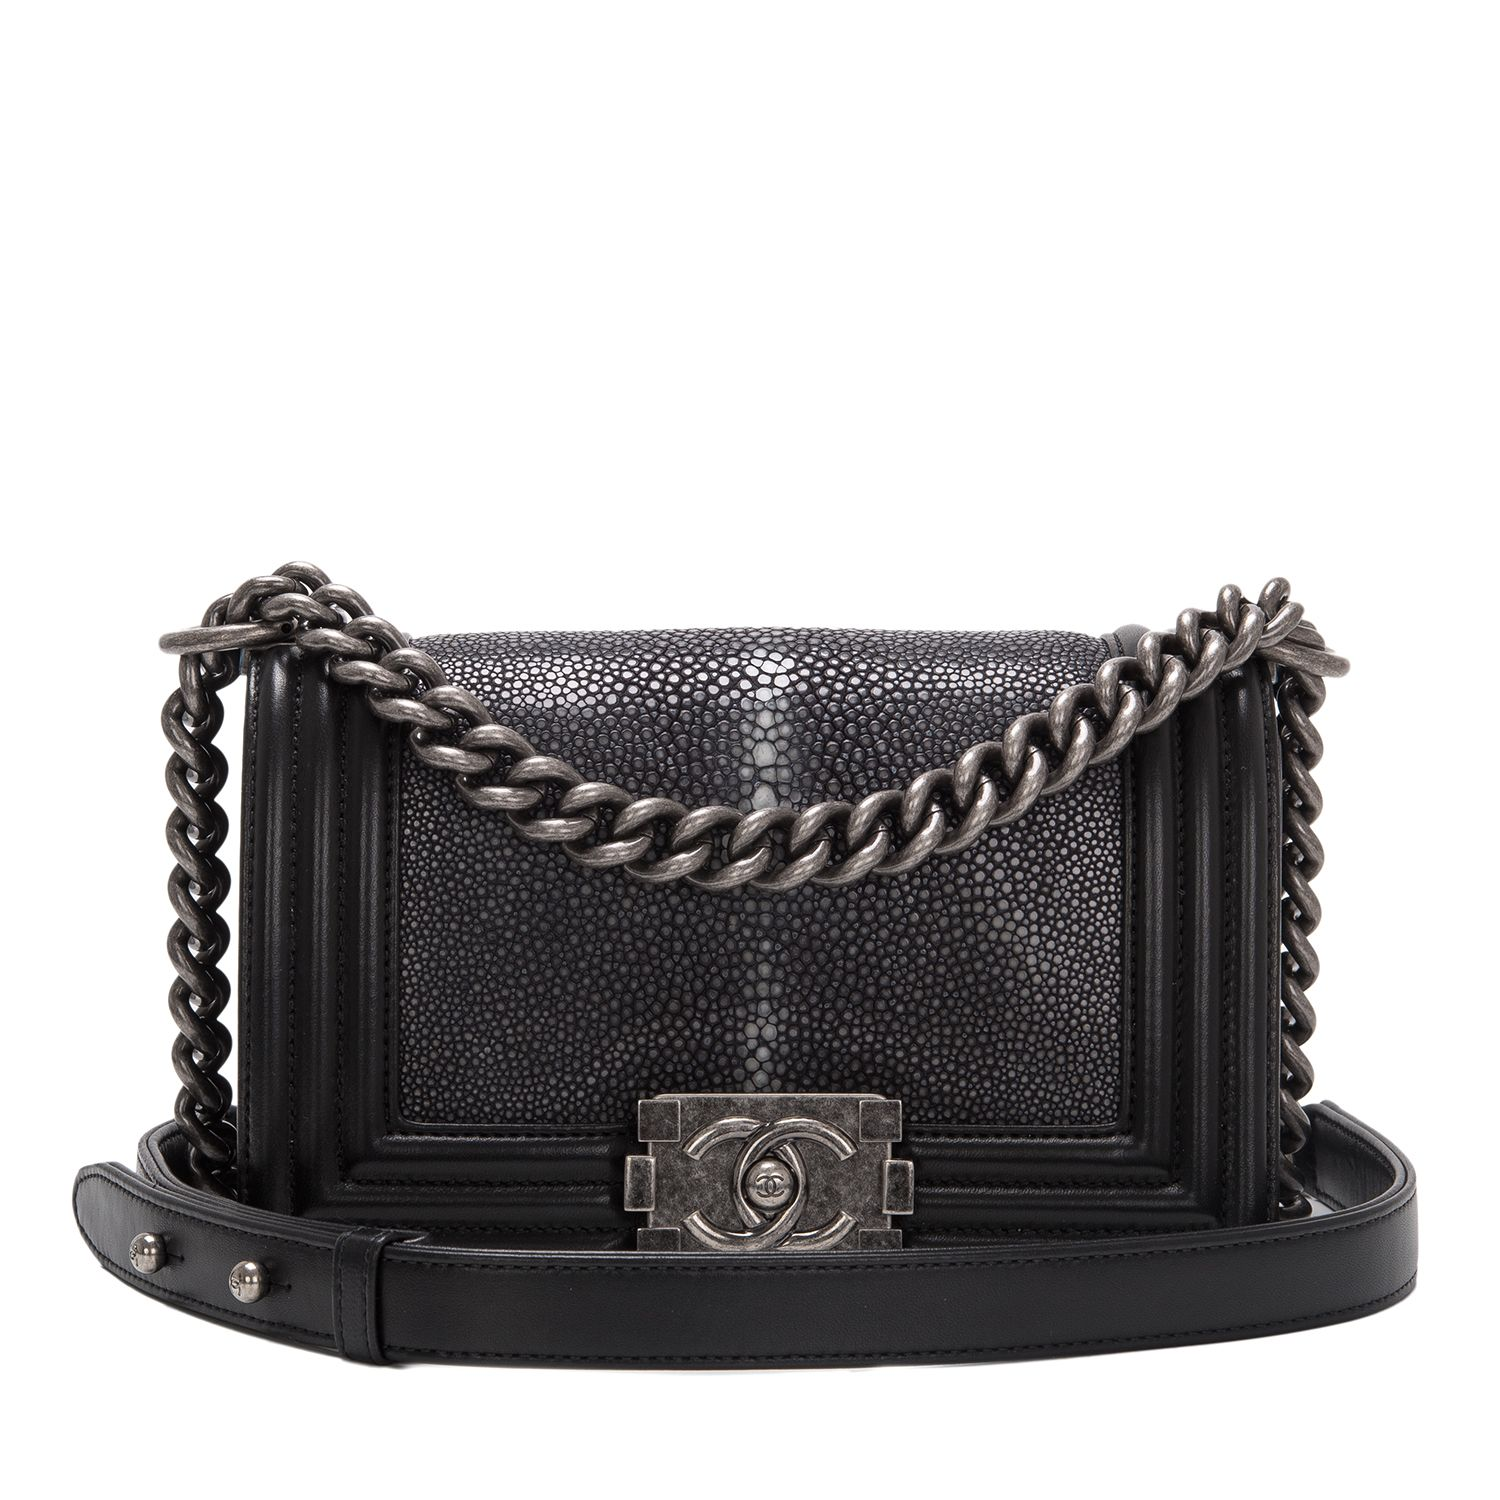 Chanel Boy Bag Black Stingray Small  chanel  4f1c9ef1a5a1b